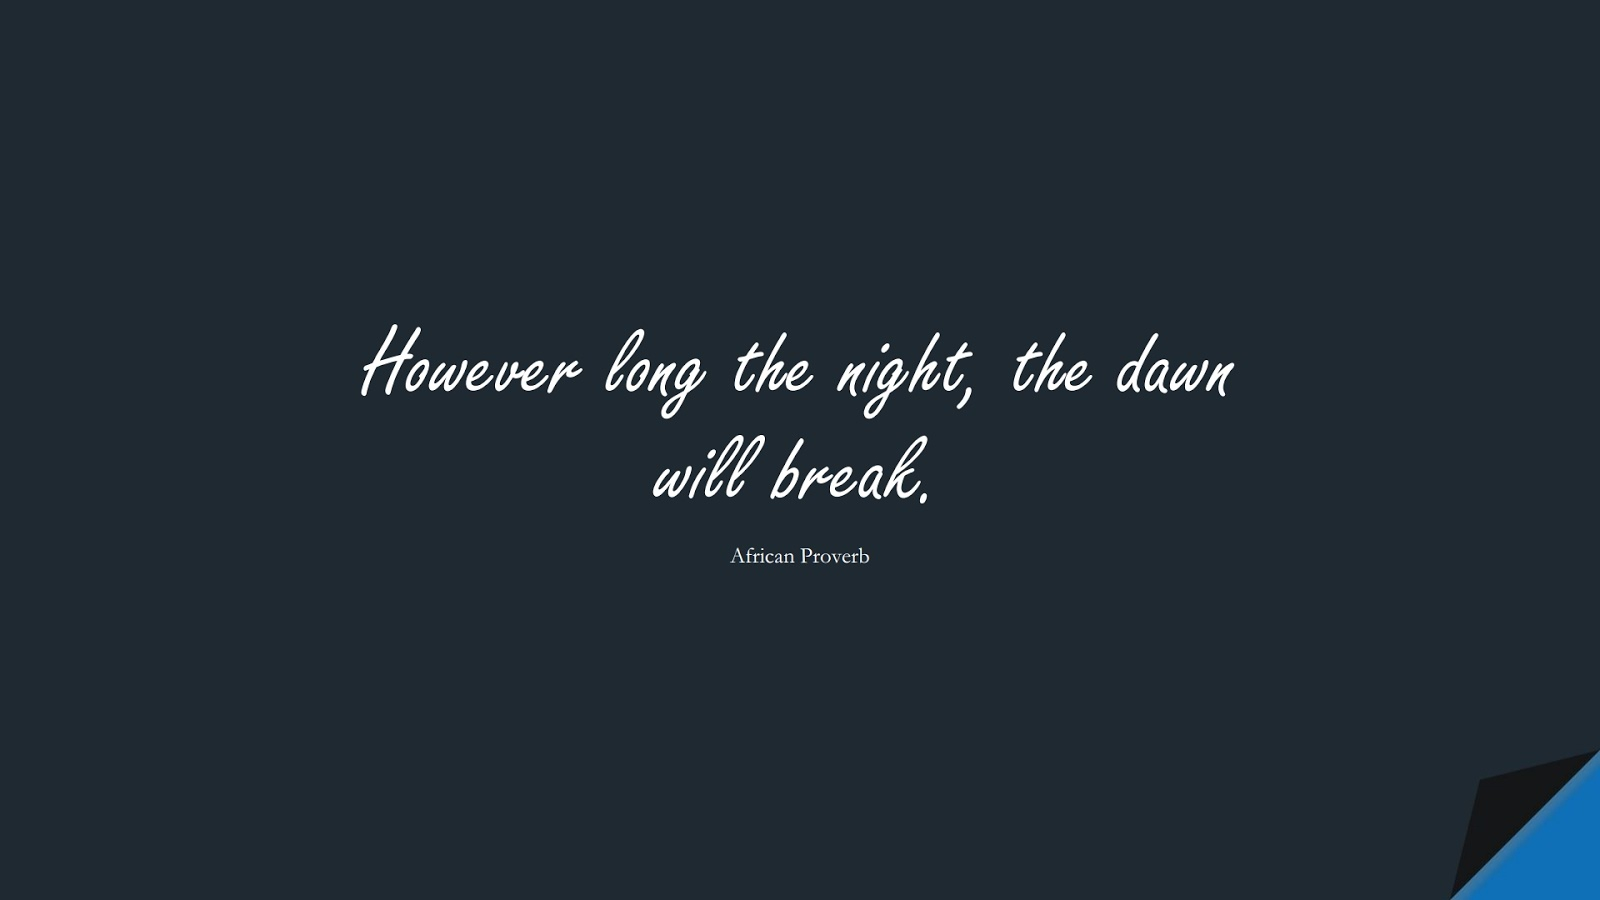 However long the night, the dawn will break. (African Proverb);  #HopeQuotes